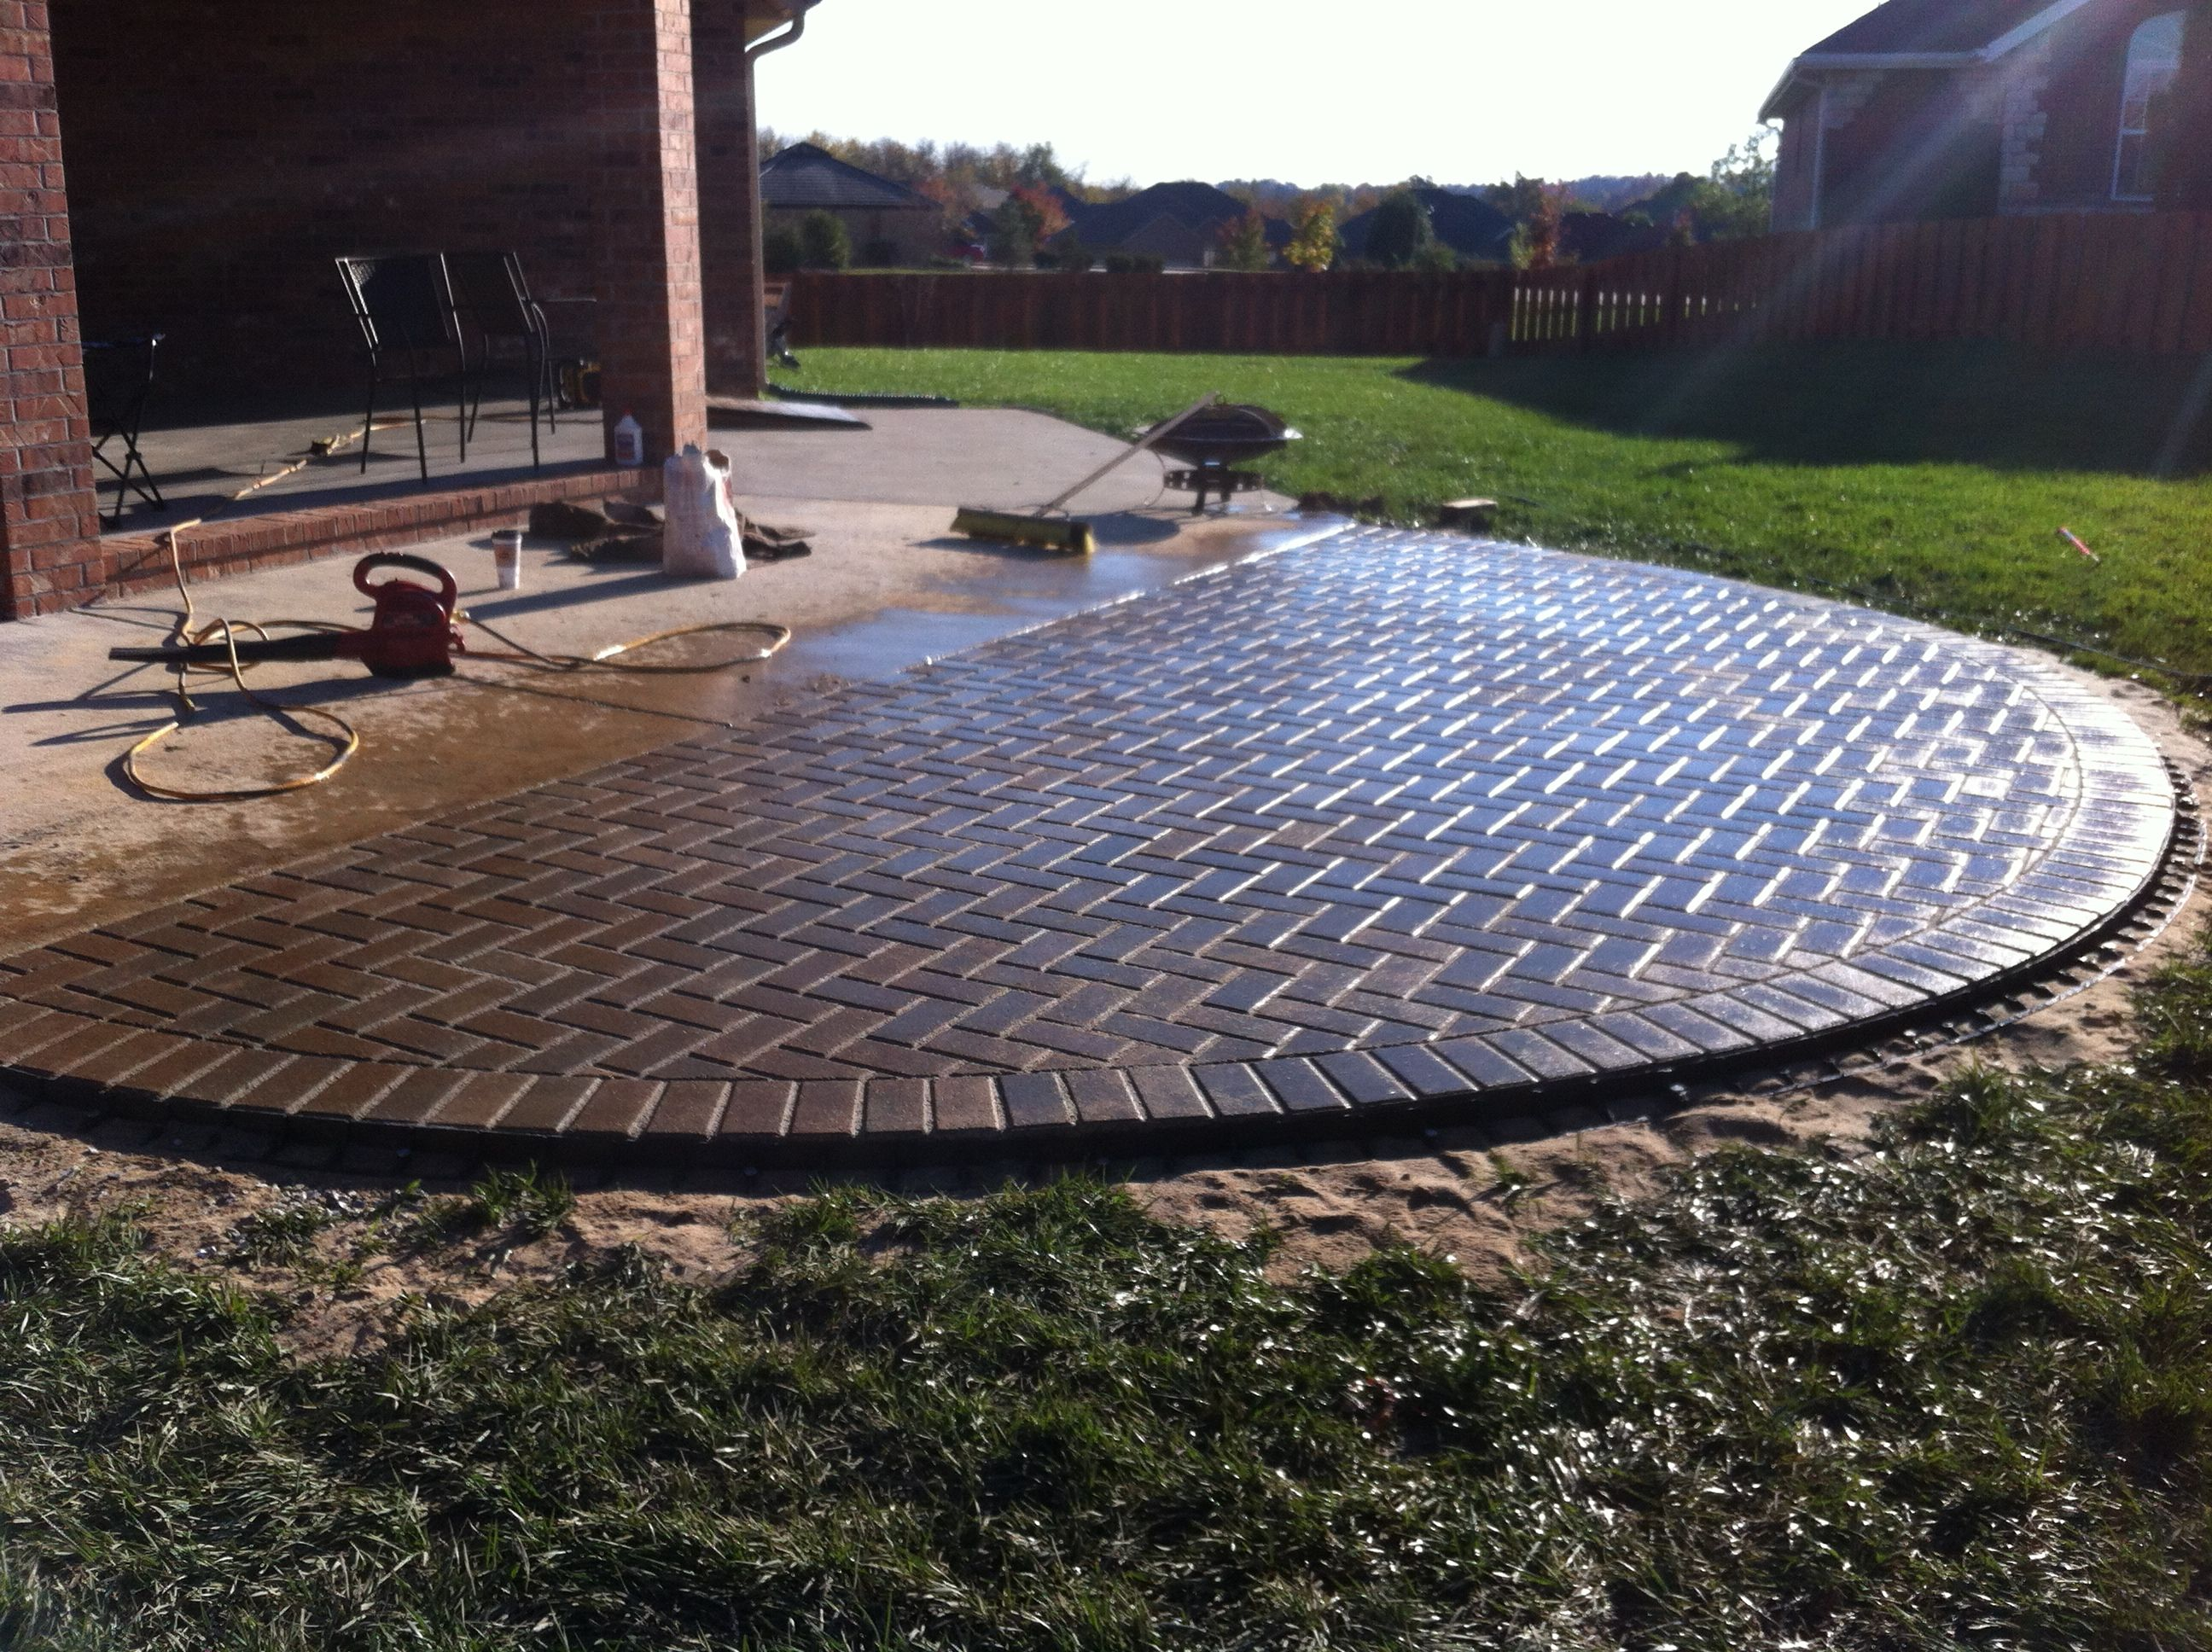 Paver Patio Perfect Half Circle Circle Patio Paver Patio Backyard Patio